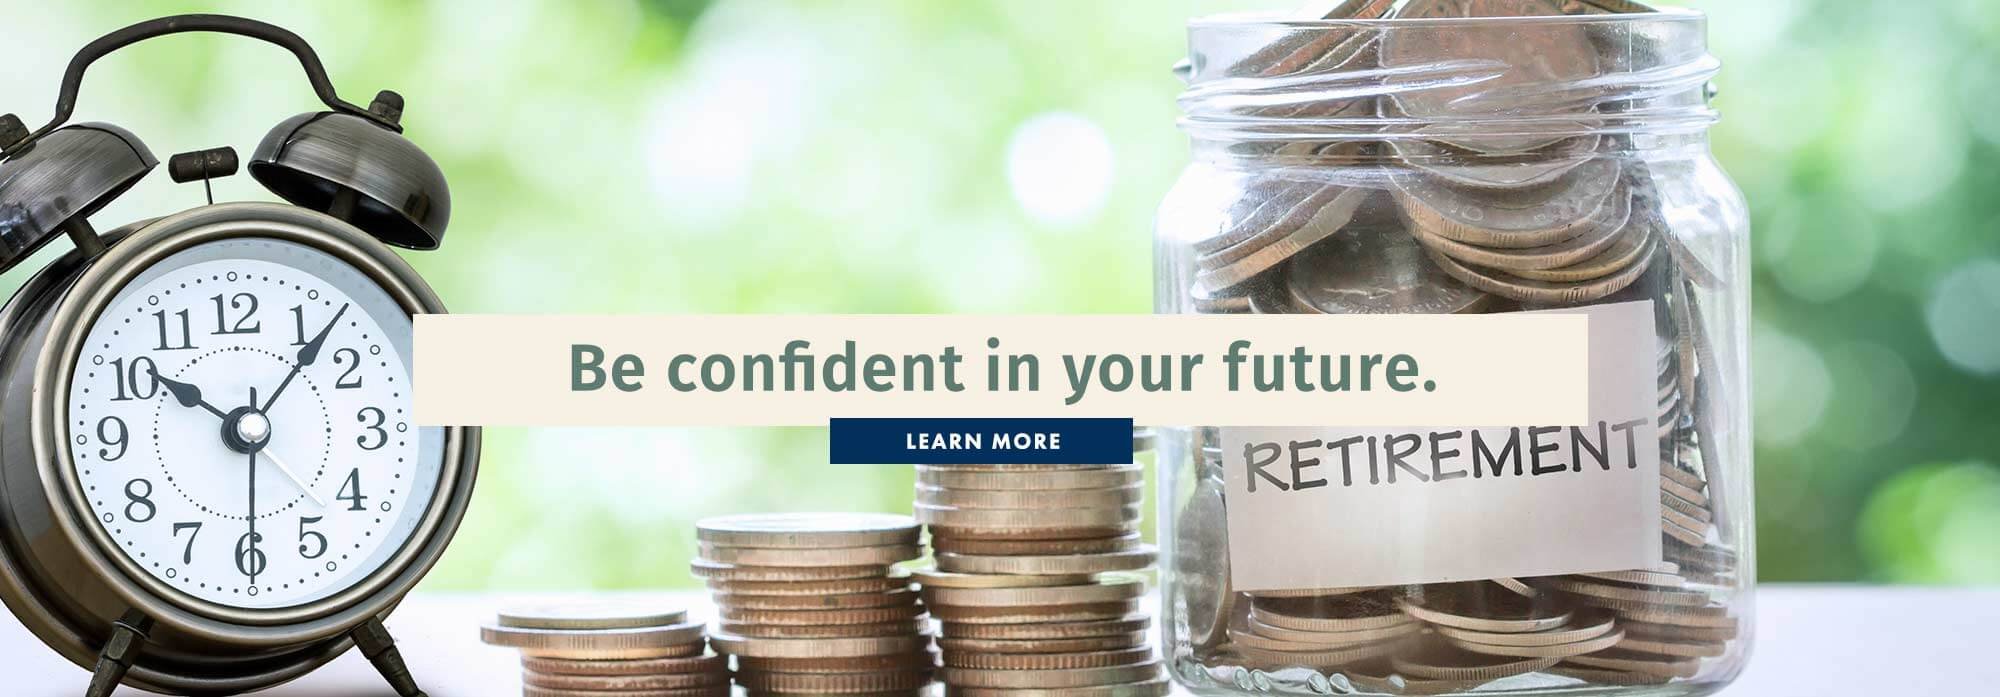 Be confident in your financial future. Learn more